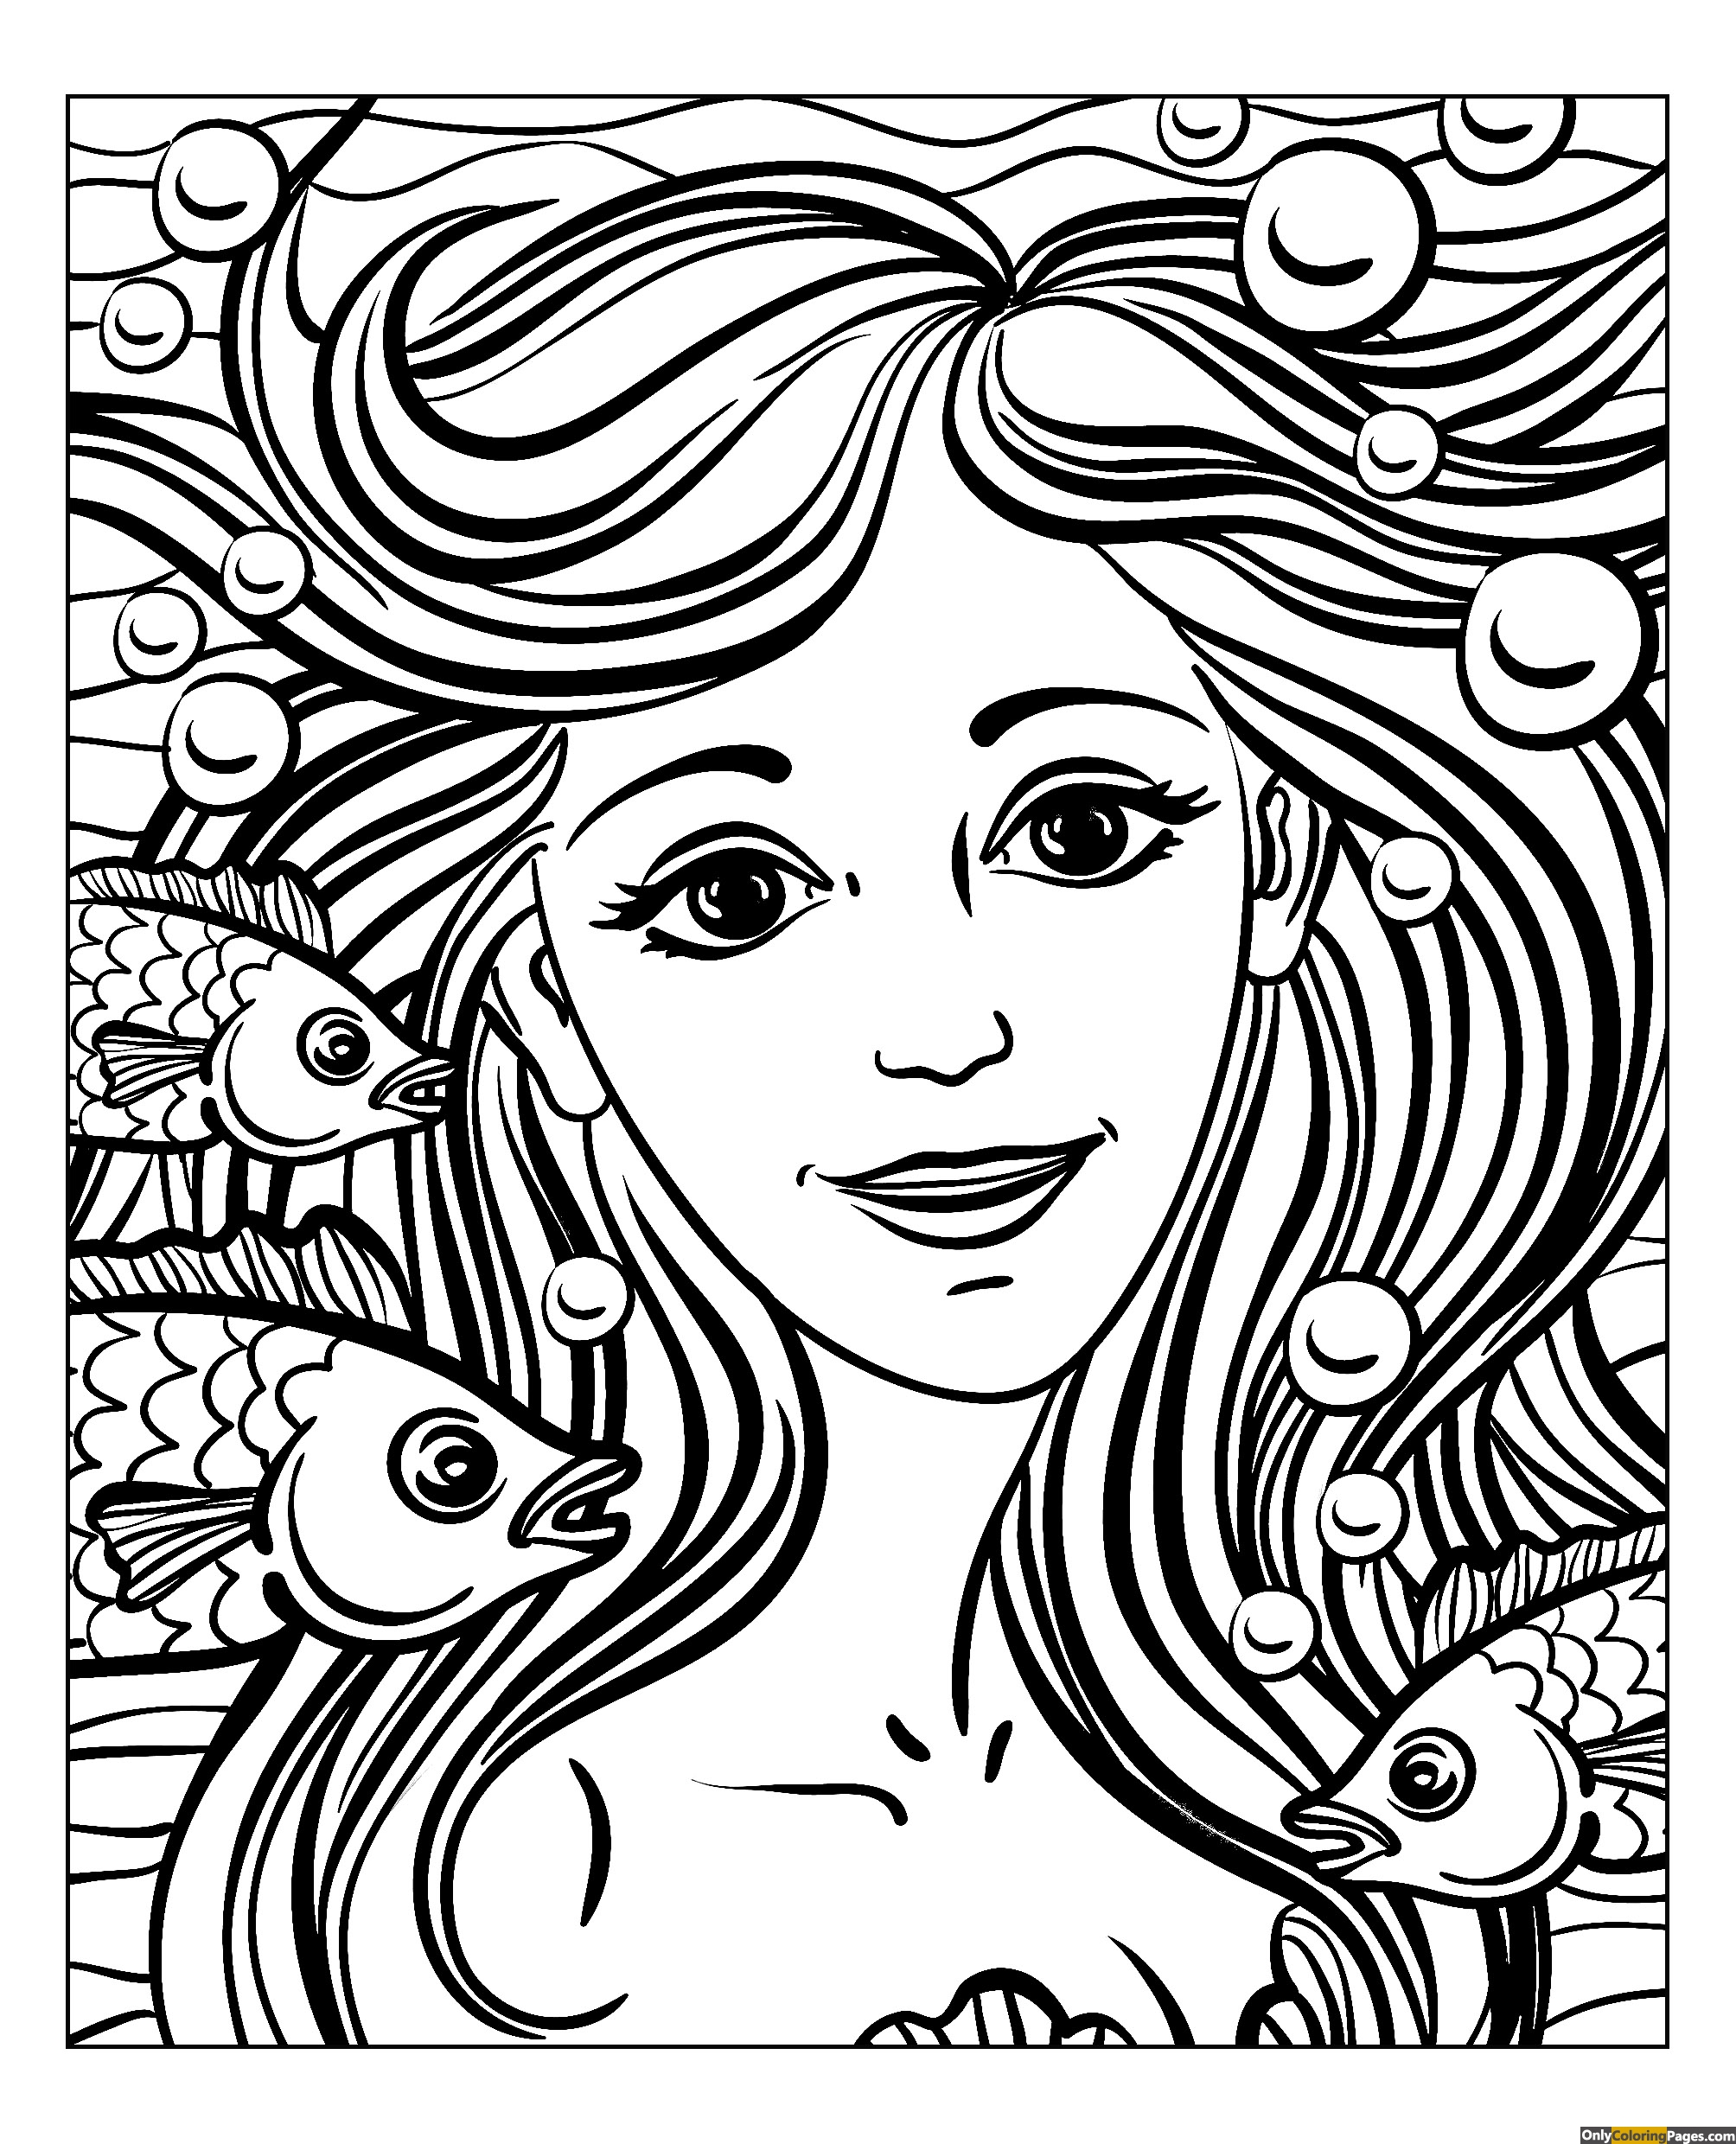 coloring pages of girls realistic the best ideas for realistic girl coloring pages best of girls pages coloring realistic